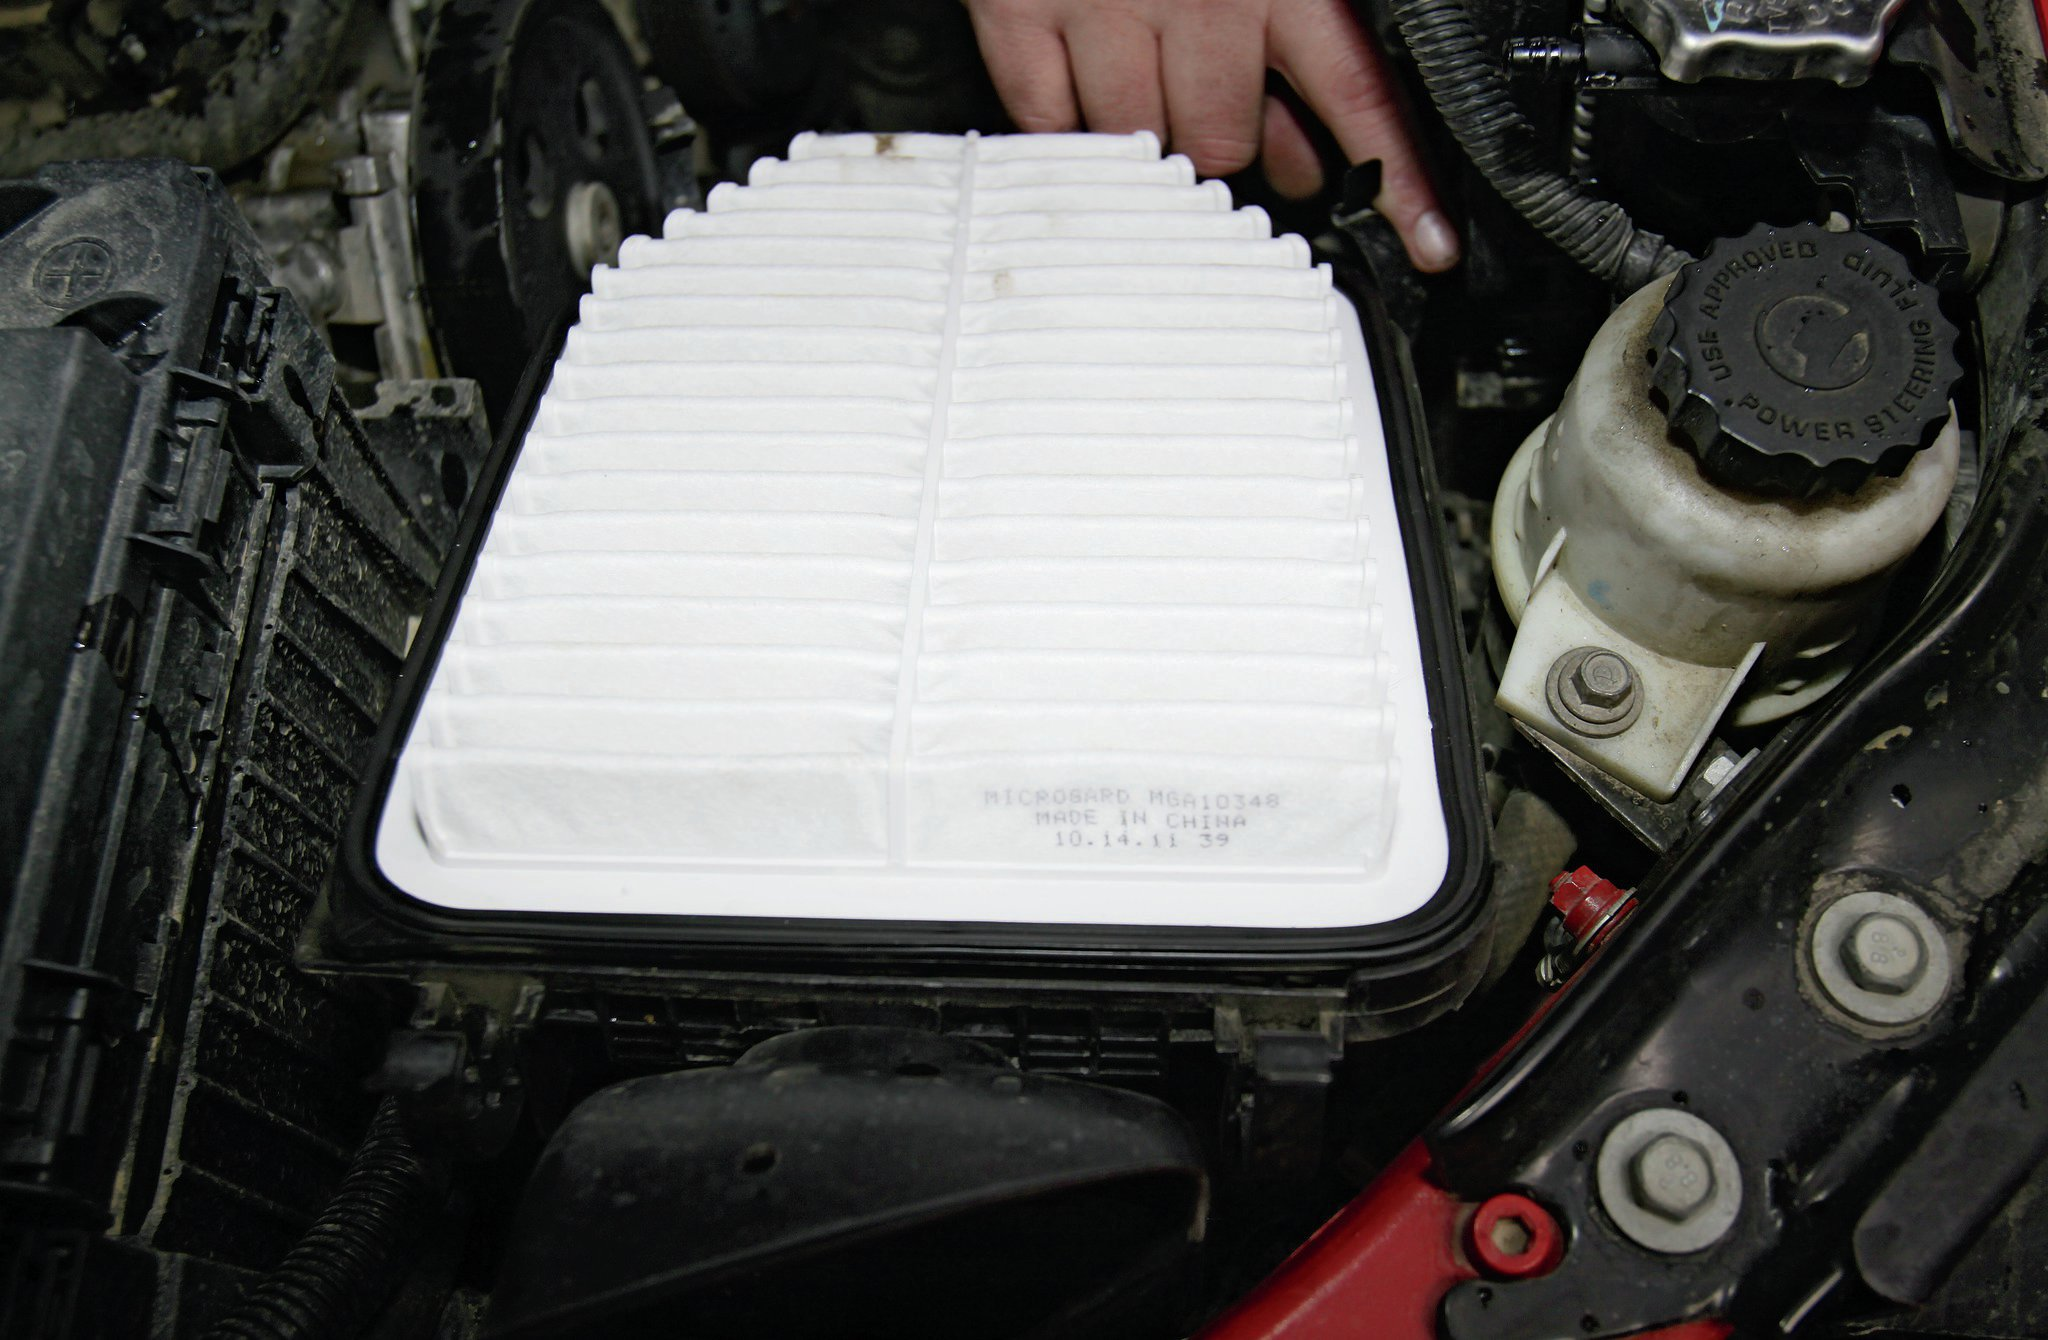 Since you're already up there, it would be a good idea to go ahead and change the air filter now. Undo the top cover by popping the four clips loose and replacing the filter with a new one, making sure it is well seated in the air box. One of the great mysteries of the world is the placement of the front-right clip. If you have large clumsy hands like me, a long screwdriver may help you to put that clip back in place.